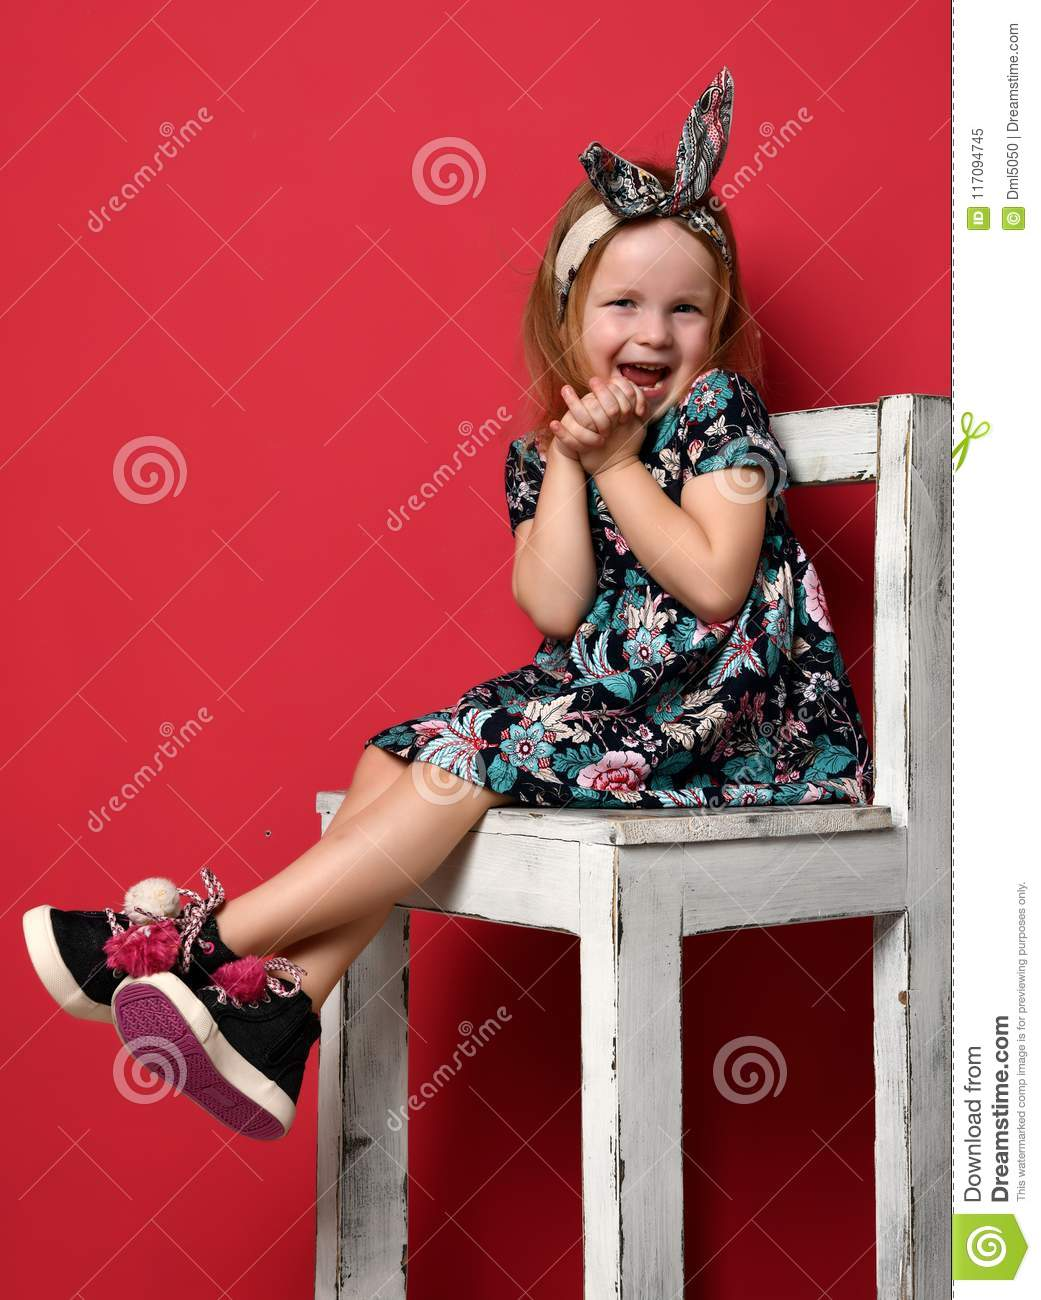 Cute baby girl kid in fashion summer dress and headband sitting on chair happy smiling